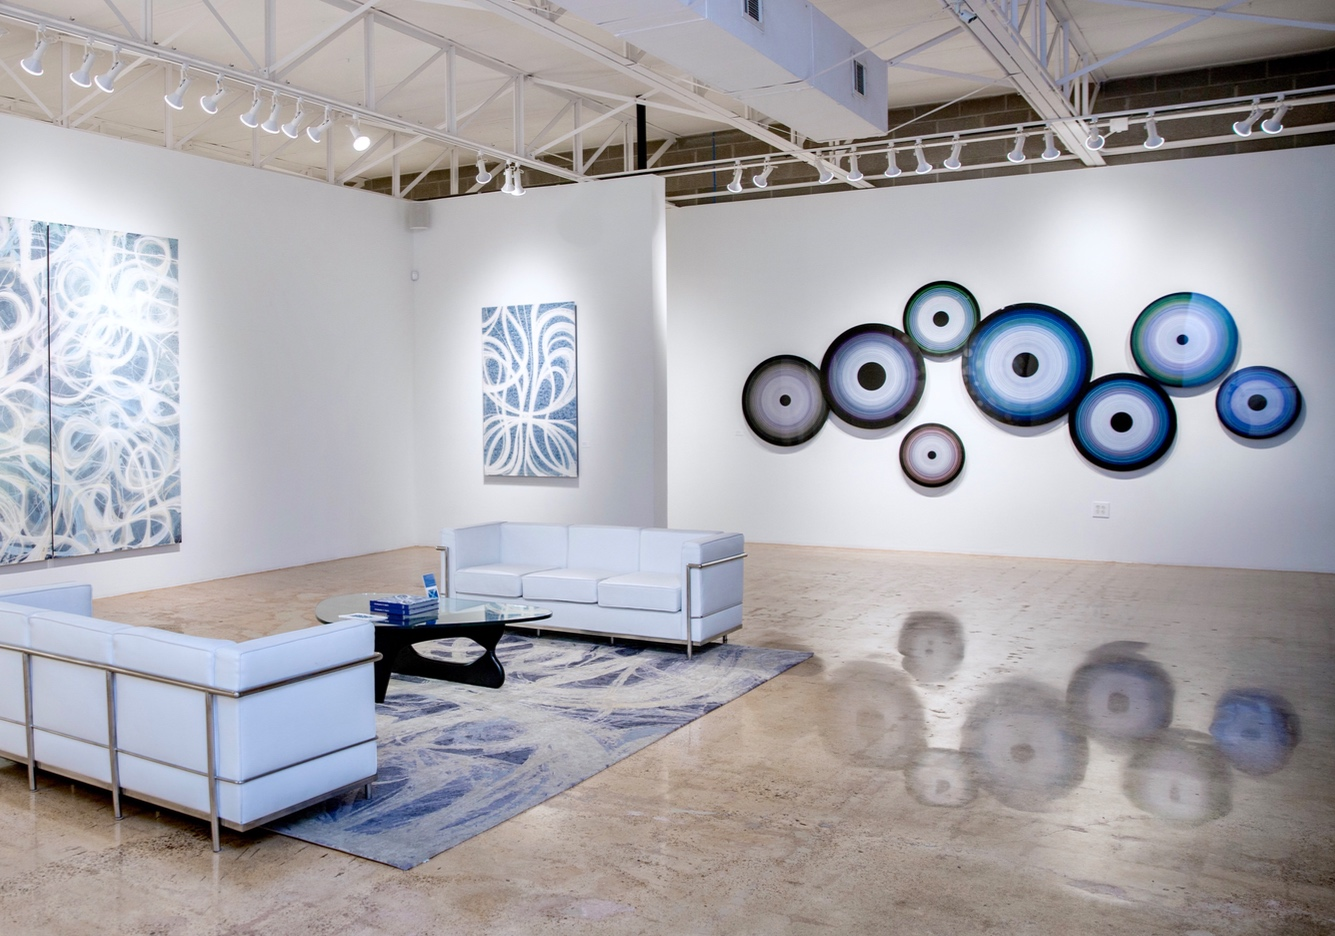 1/17/19 - DALLAS | Third Thursday Gallery Walk | 5-8 pmPlease join us for cocktails at for a night of art openings at our gallery and our neighbors: Ferrari Gallery, Ginger Fox Gallery, Joel Cooner Gallery, Beaudry Gallery and the Lawley Art Group.